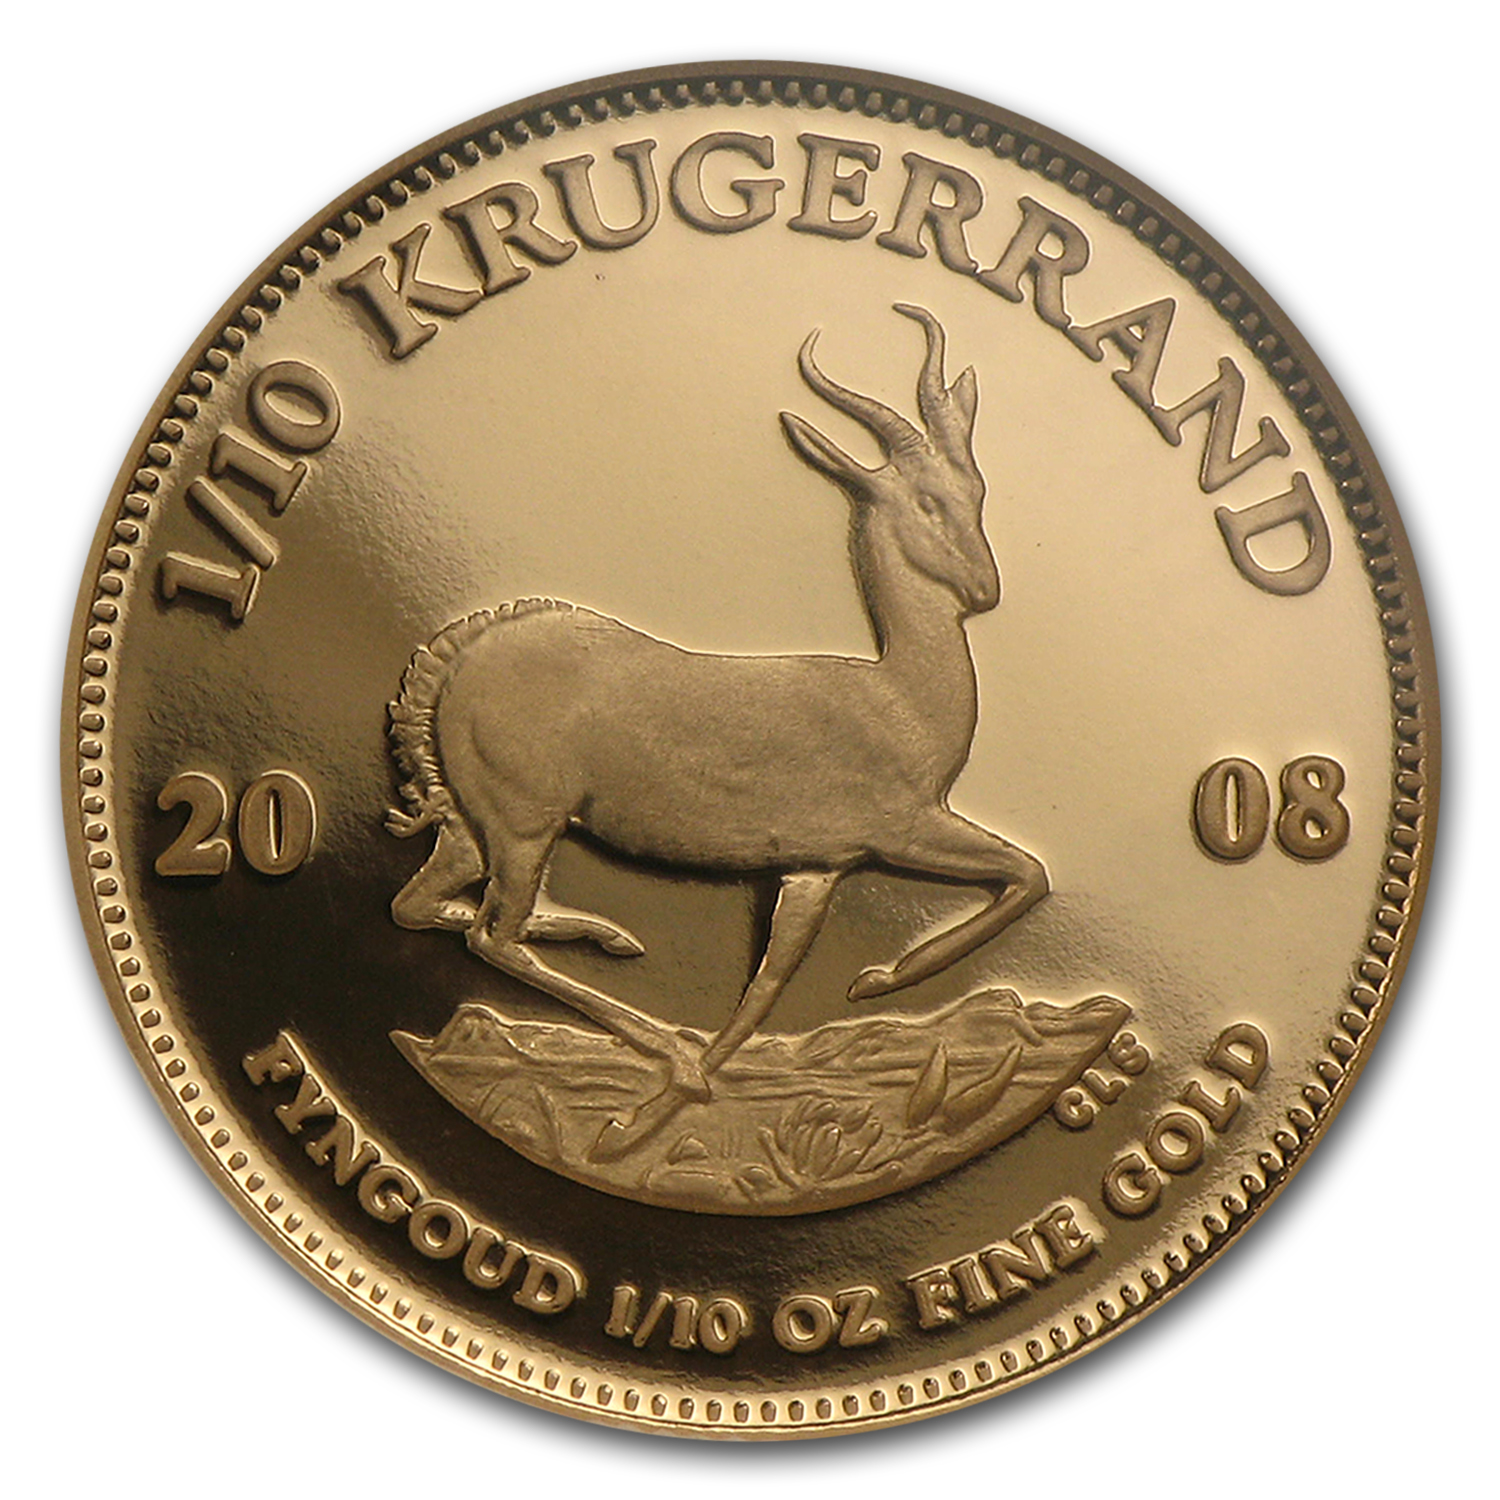 2008 South Africa 1/10 oz Gold Krugerrand PF-69 NGC